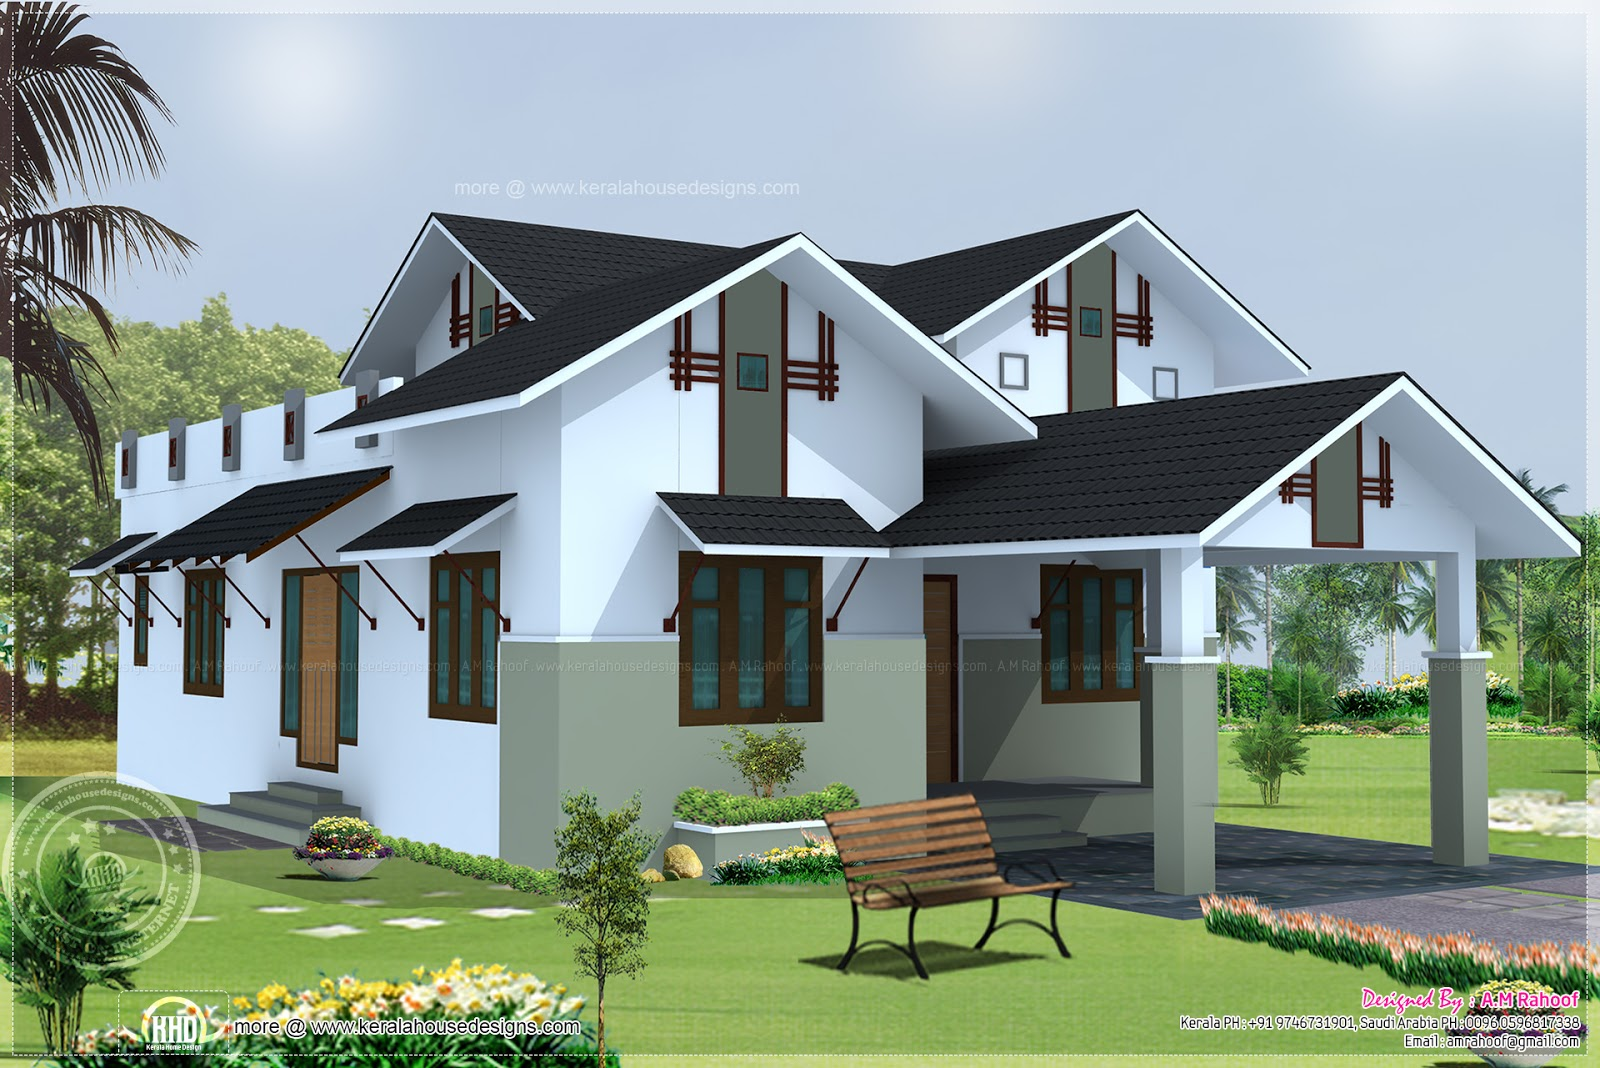 Sloping roof single floor house home kerala plans for 1400 sq ft house